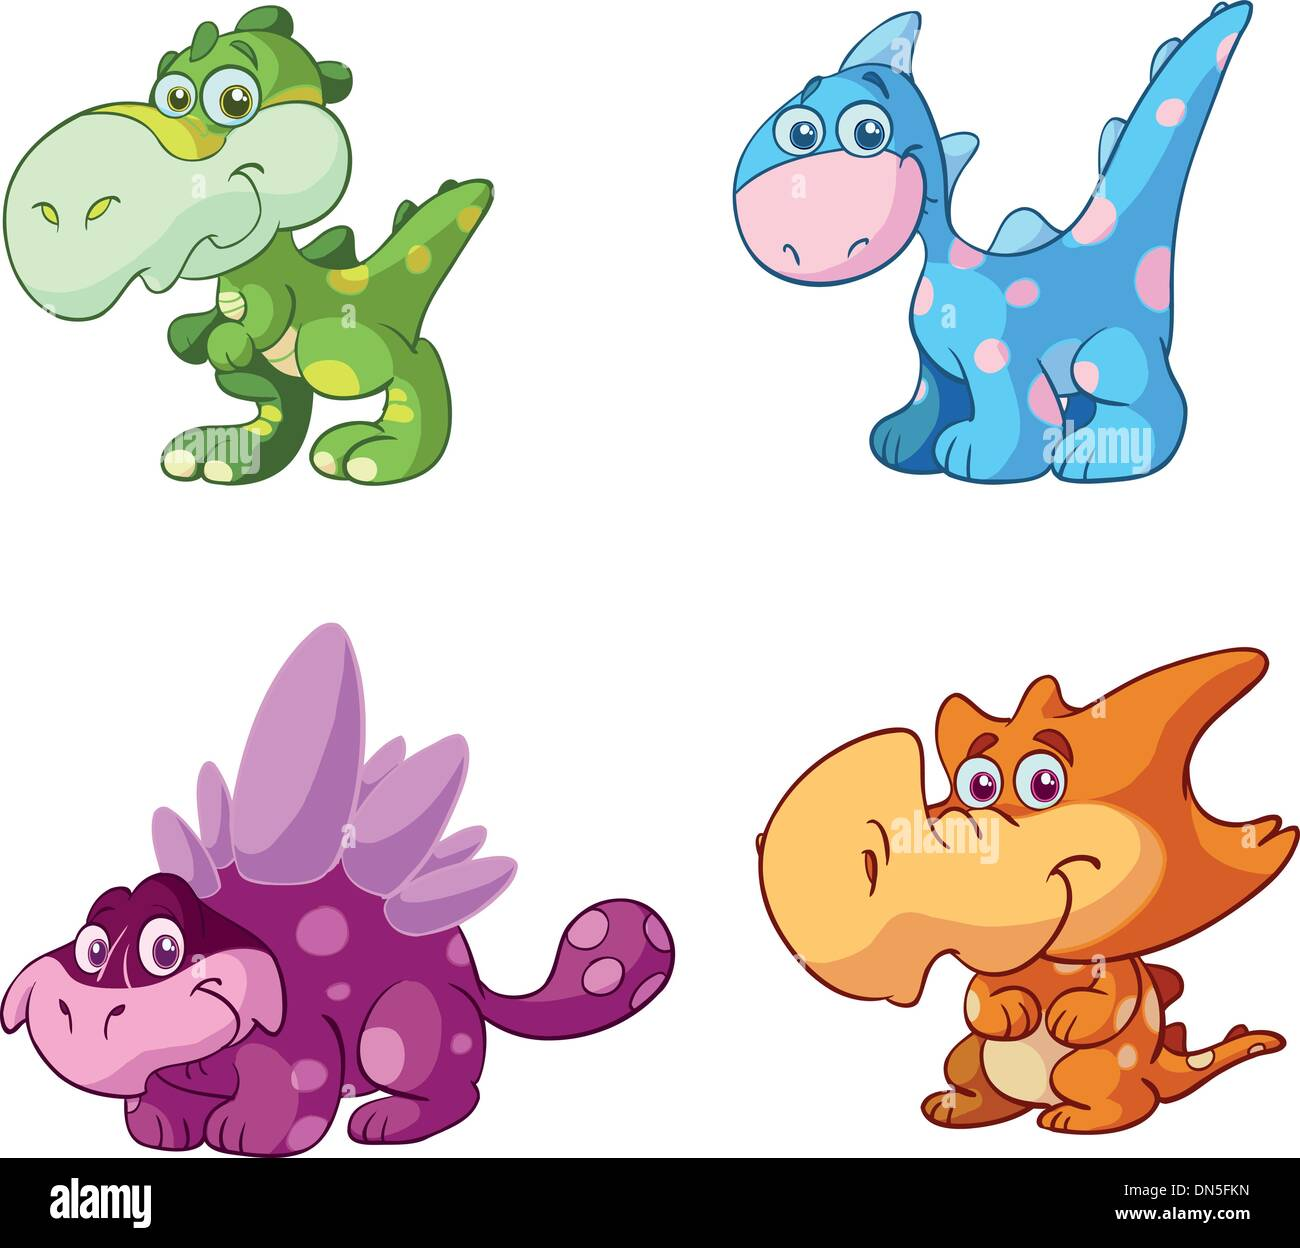 cute baby dino vector set - Stock Image